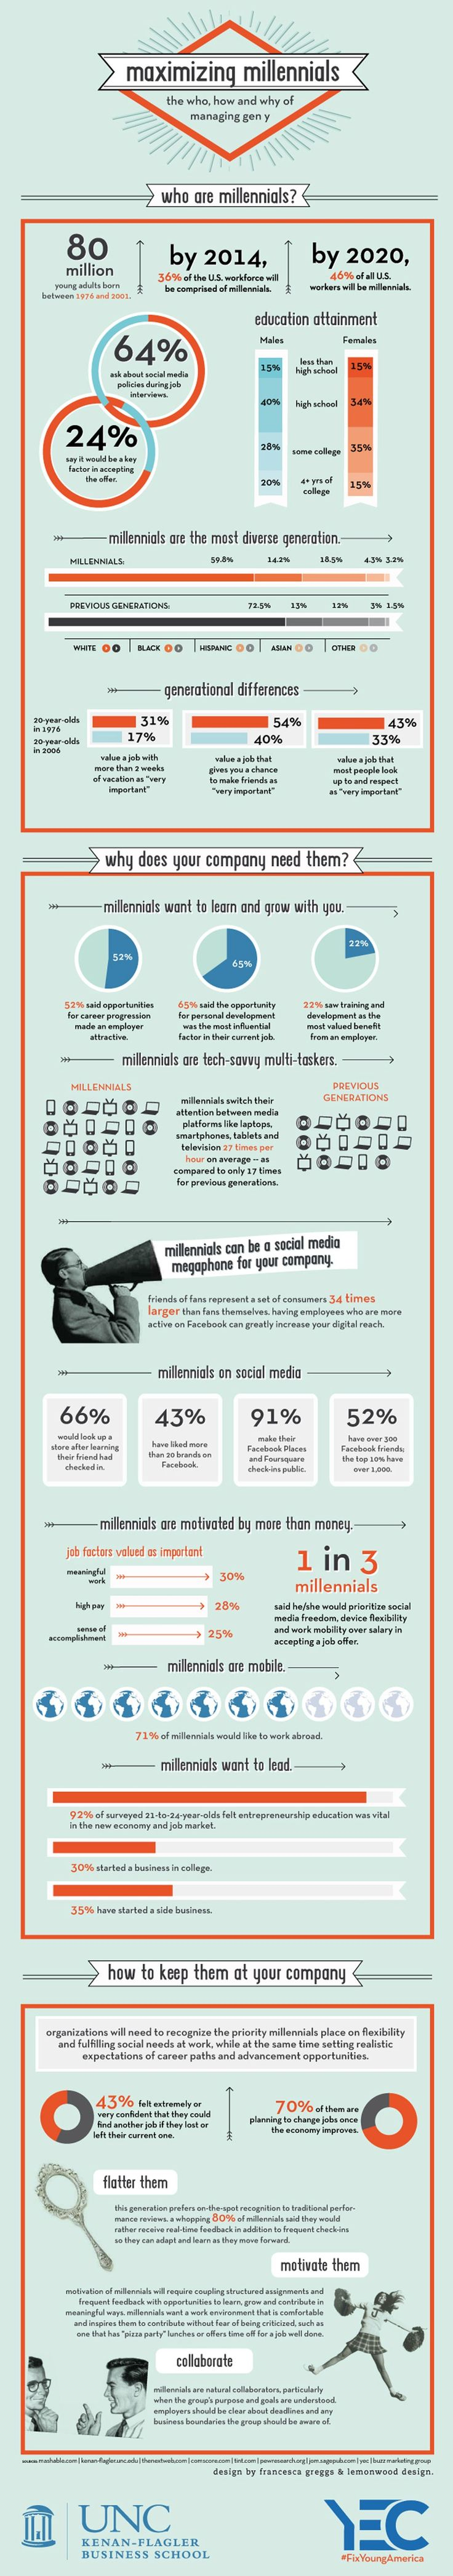 Millenial generation Infographic